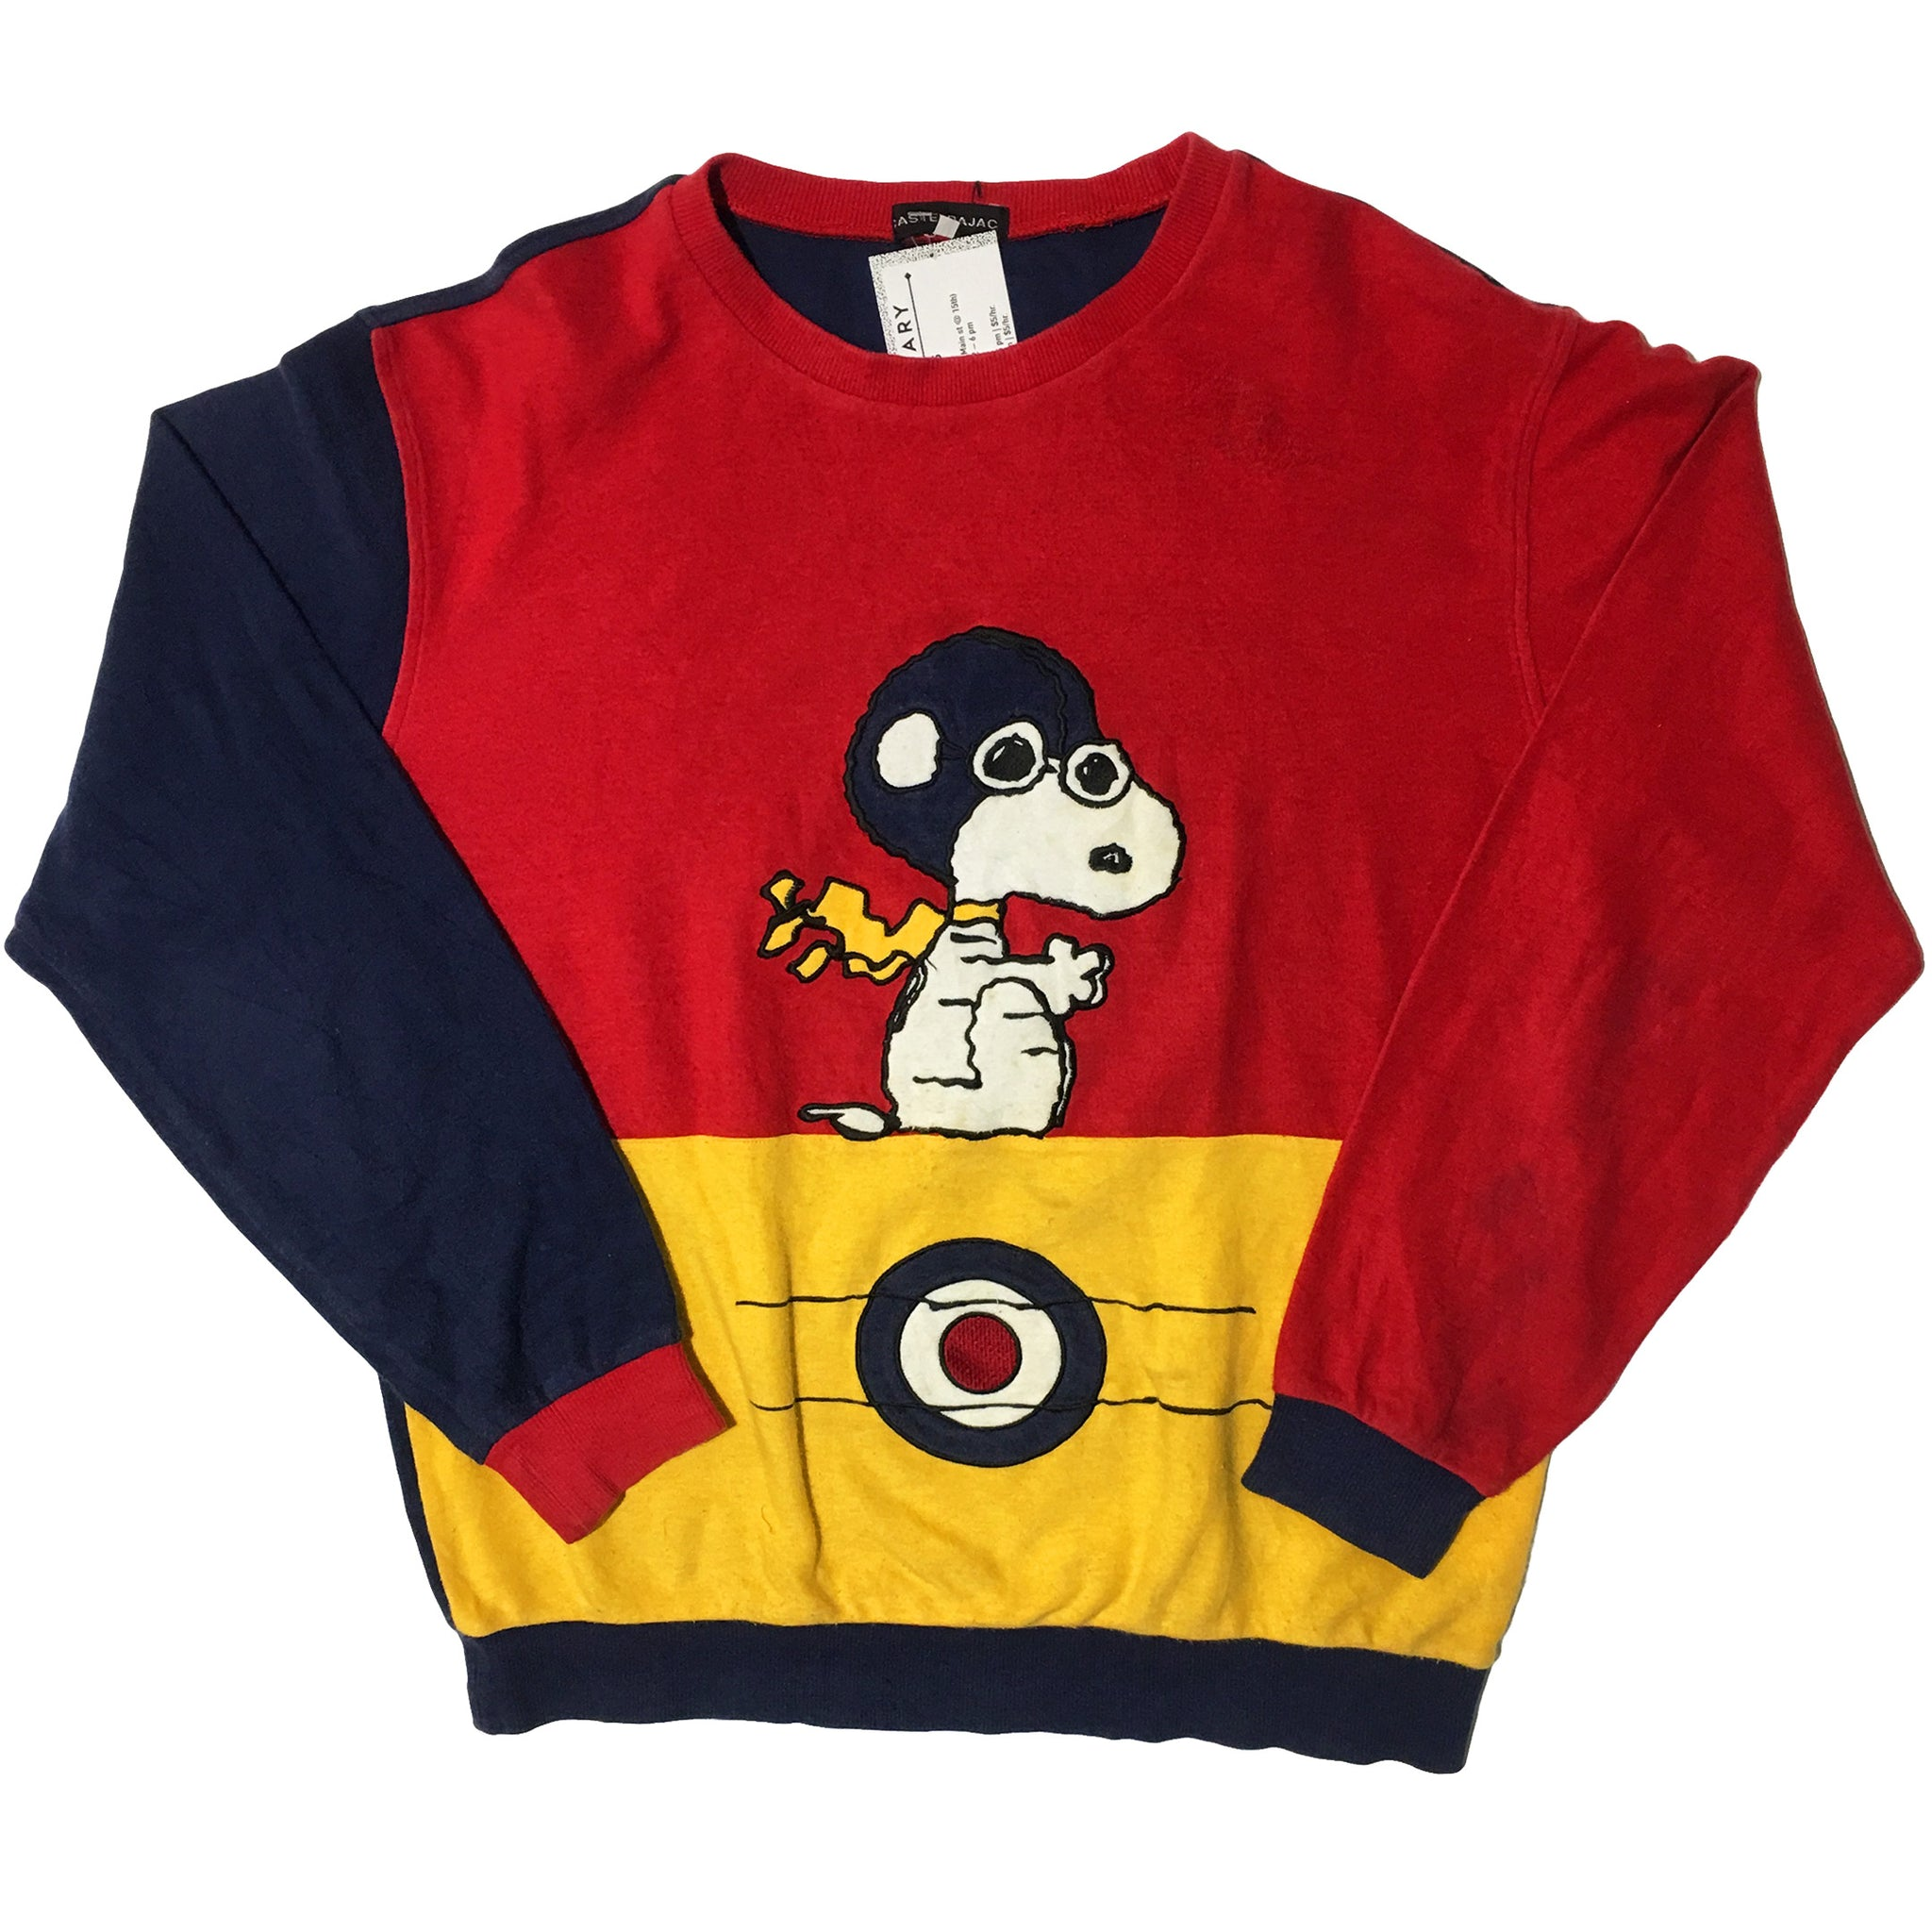 Jean-Charles de Castelbajac Snoopy Flight Sweater